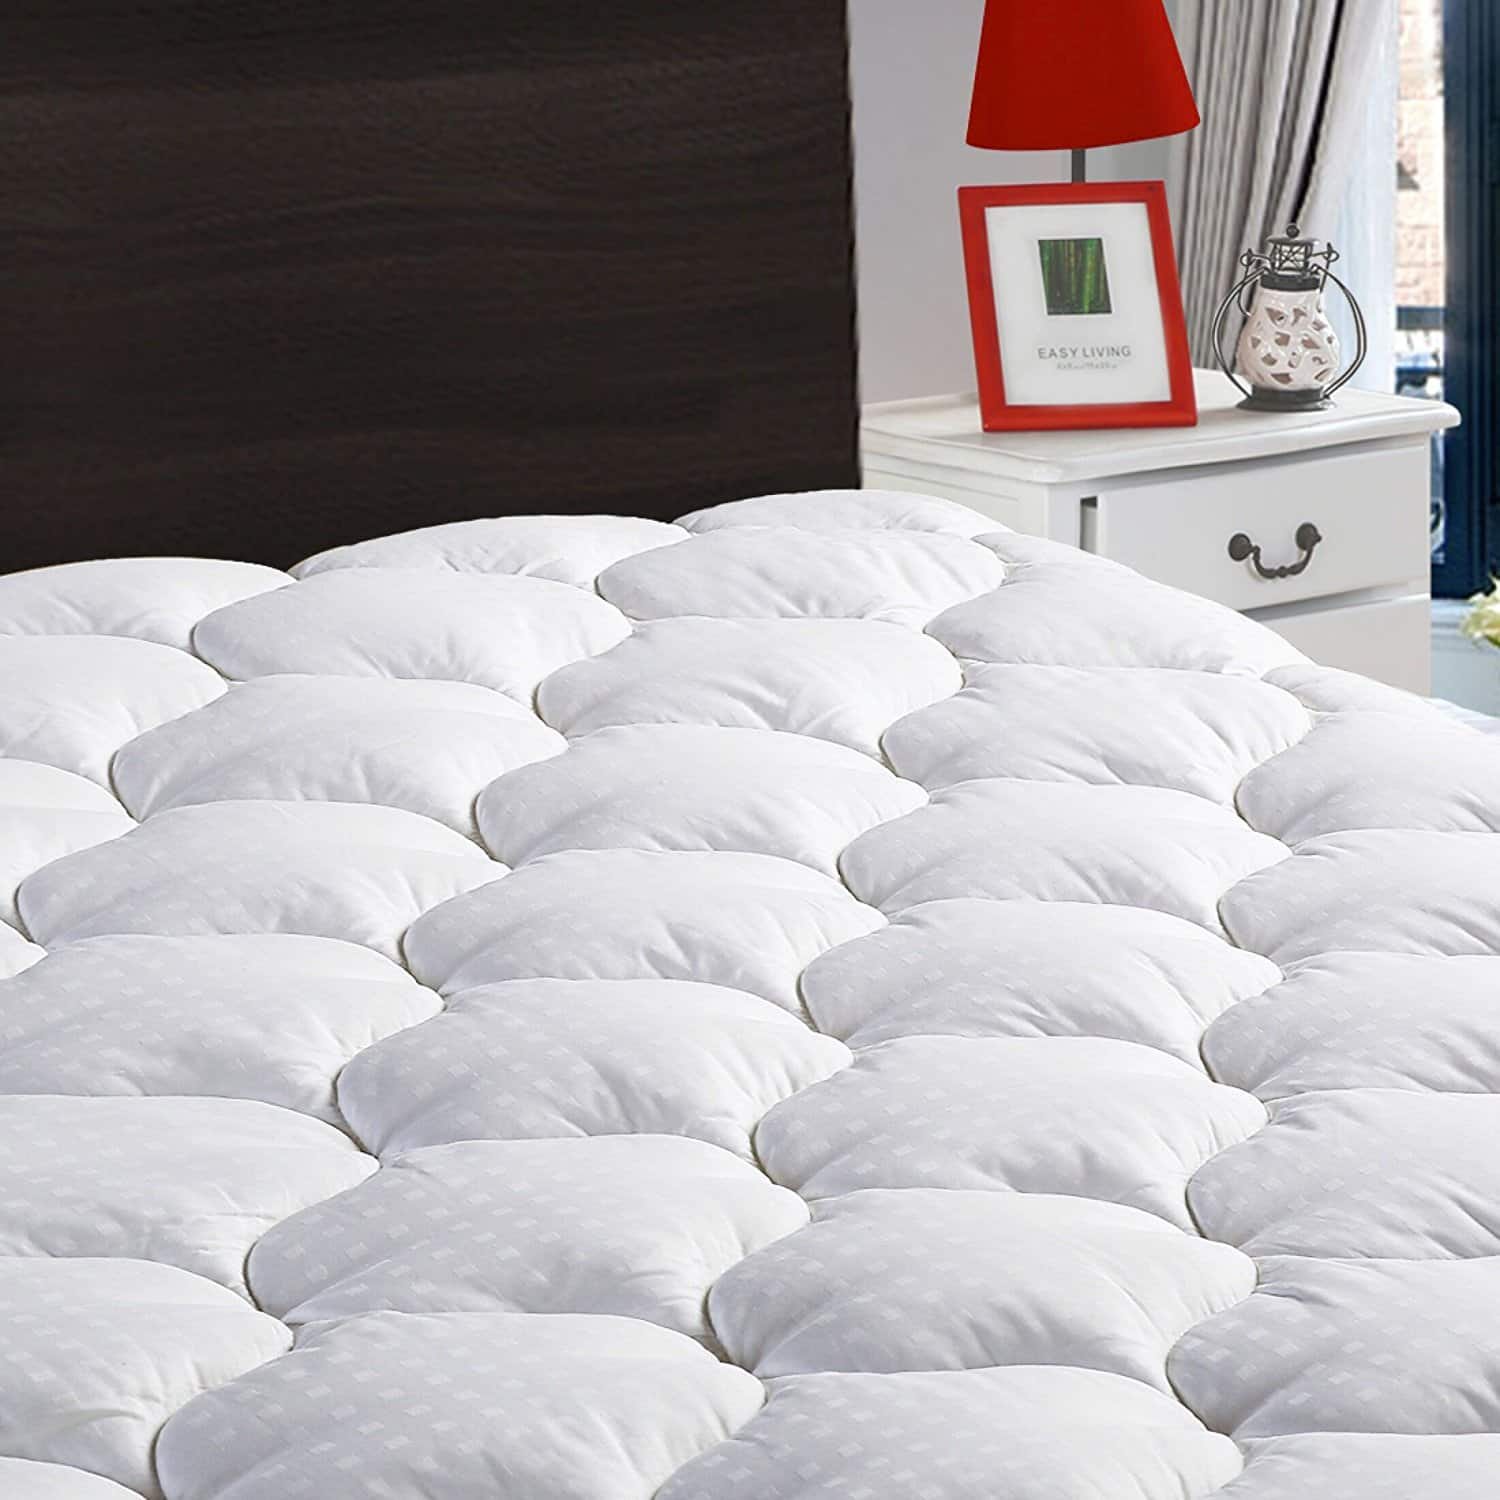 """Twin Mattress Pad Cover Cooling Topper with 8-21"""" Deep Pocket Overfilled Down Alternative $11.98 AC + FS (Prime)"""